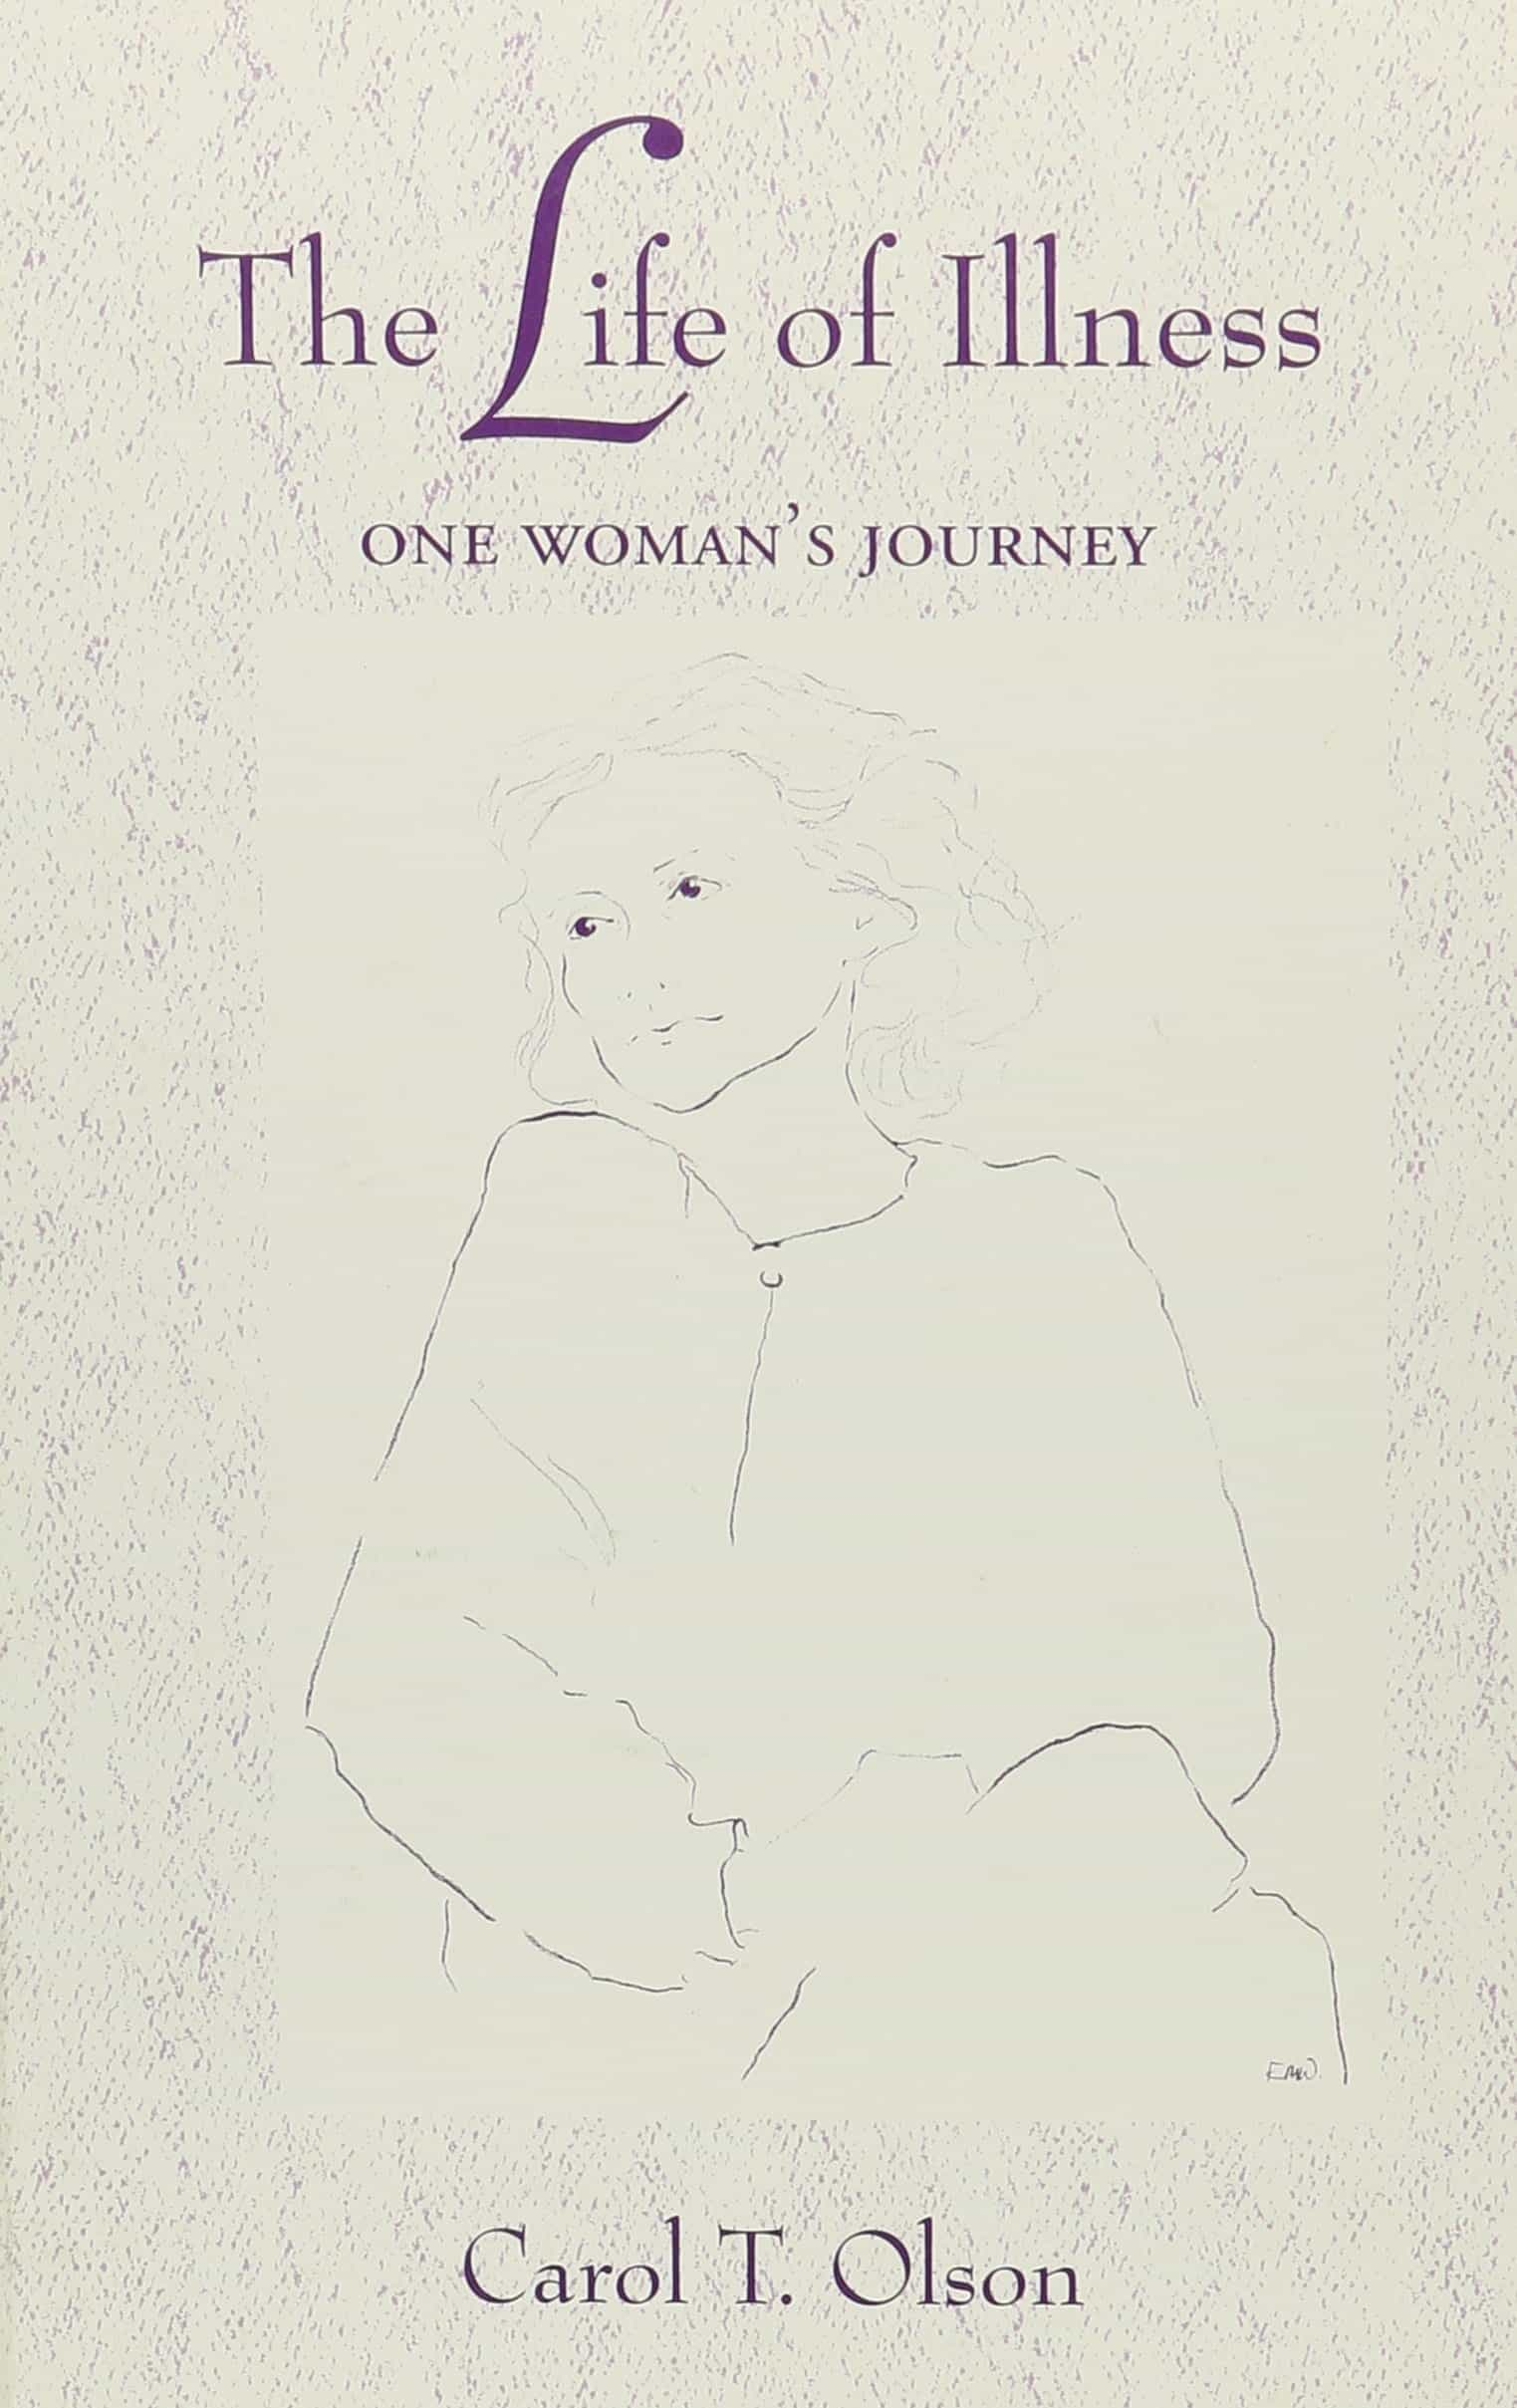 The Life of Illness: One Woman's Journey